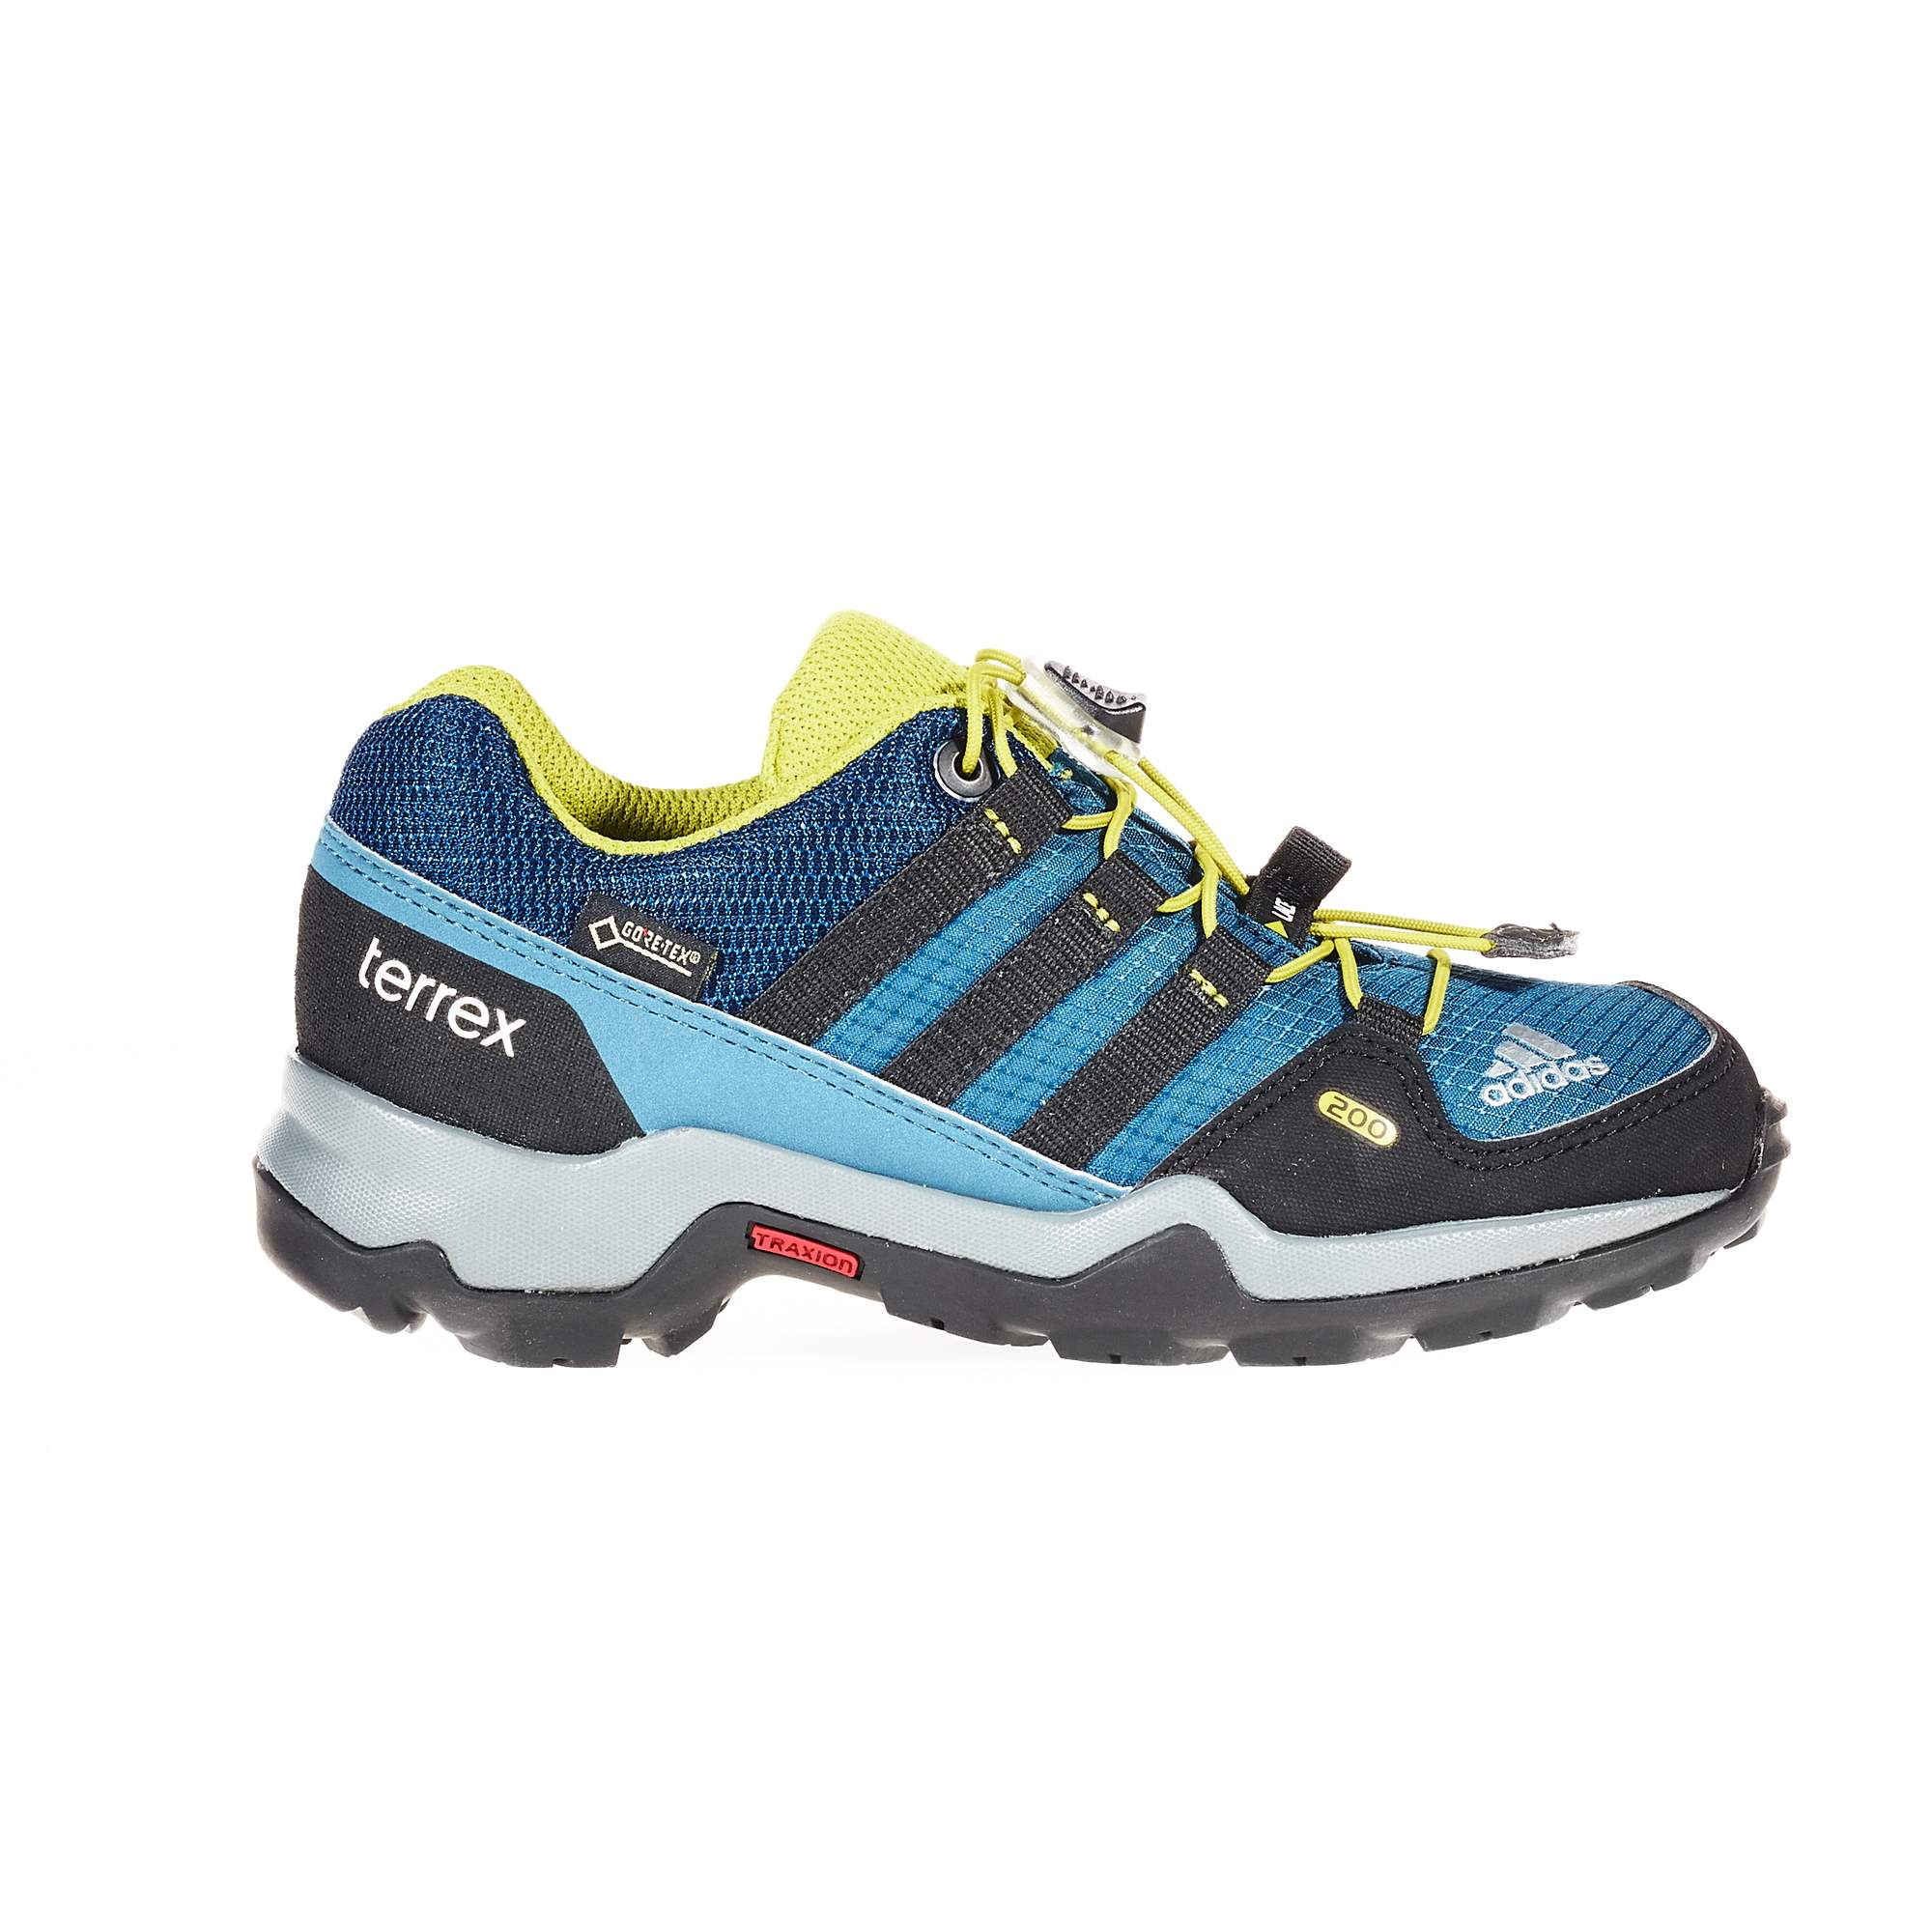 adidas terrex gtx kids preisvergleich kinderschuh. Black Bedroom Furniture Sets. Home Design Ideas